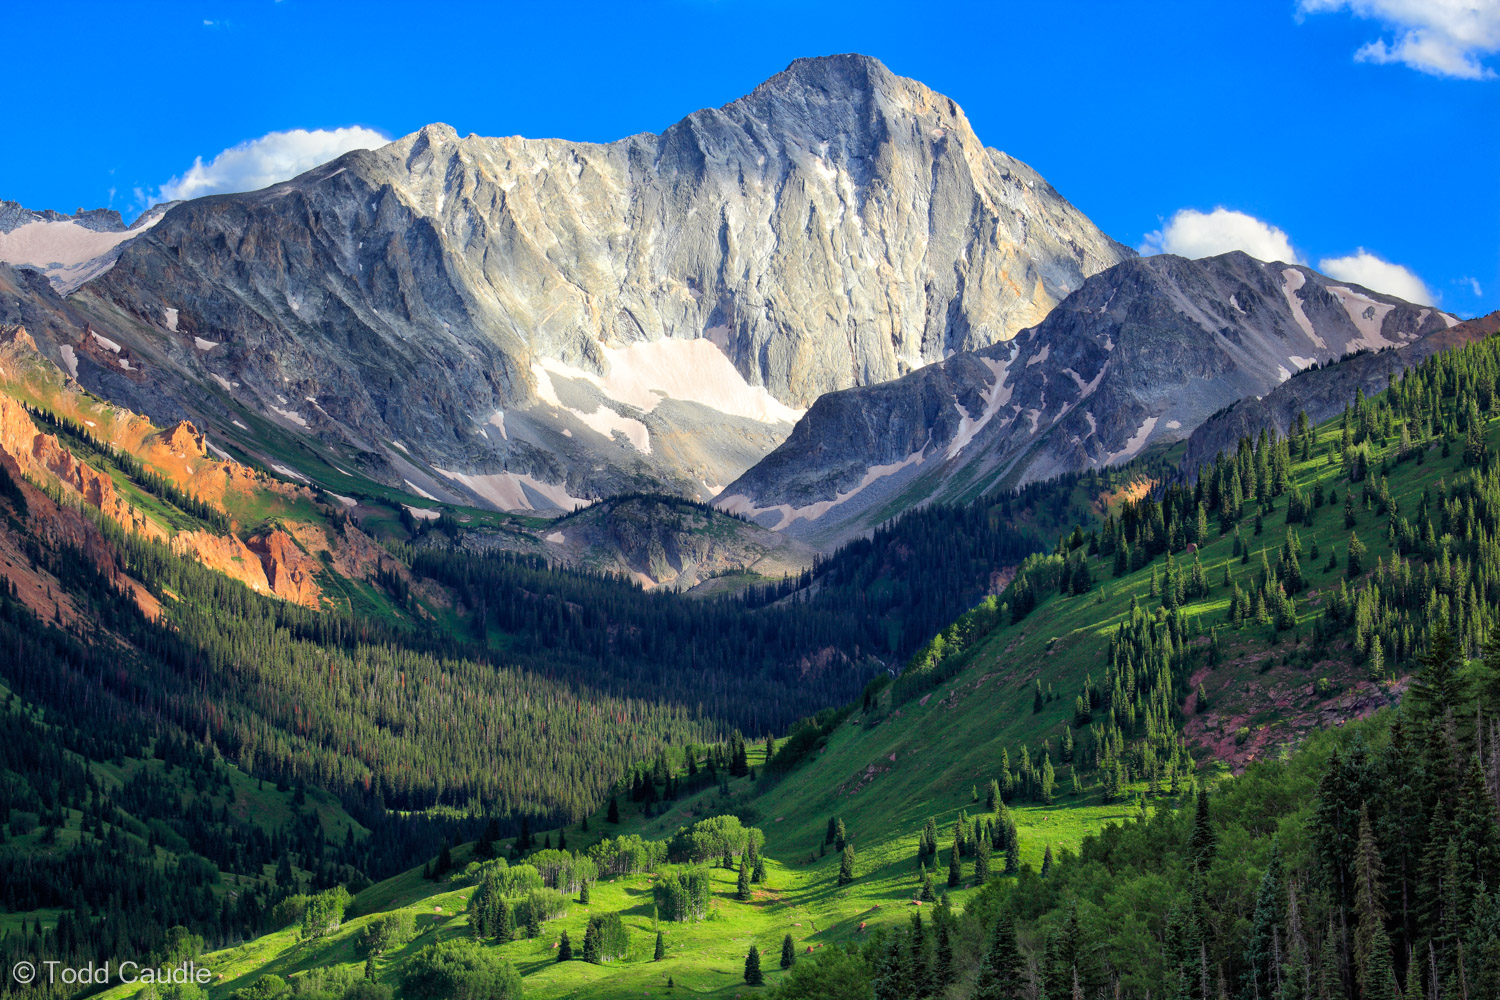 A wide-open view up the Capitol Creek Valley shows the dramatic south face of Capitol Peak, one of the most difficult of Colorado...